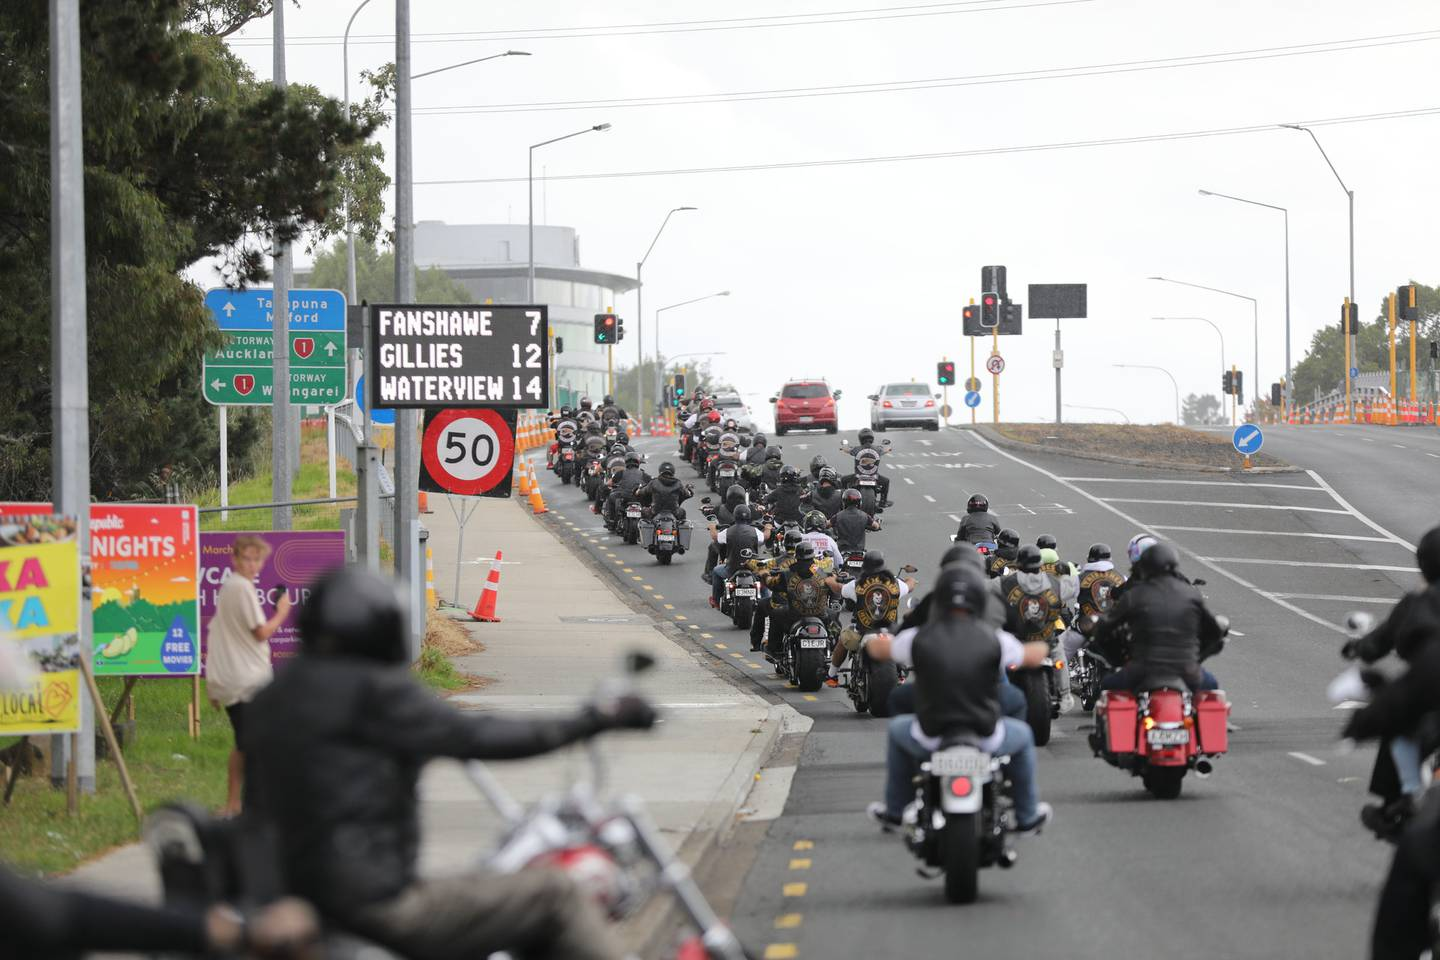 Police said they were aware of the planned motorcycle run involving members of the Hells Angels Nomads Gang around the North Shore and Rodney. Photo / Hayden Woodward